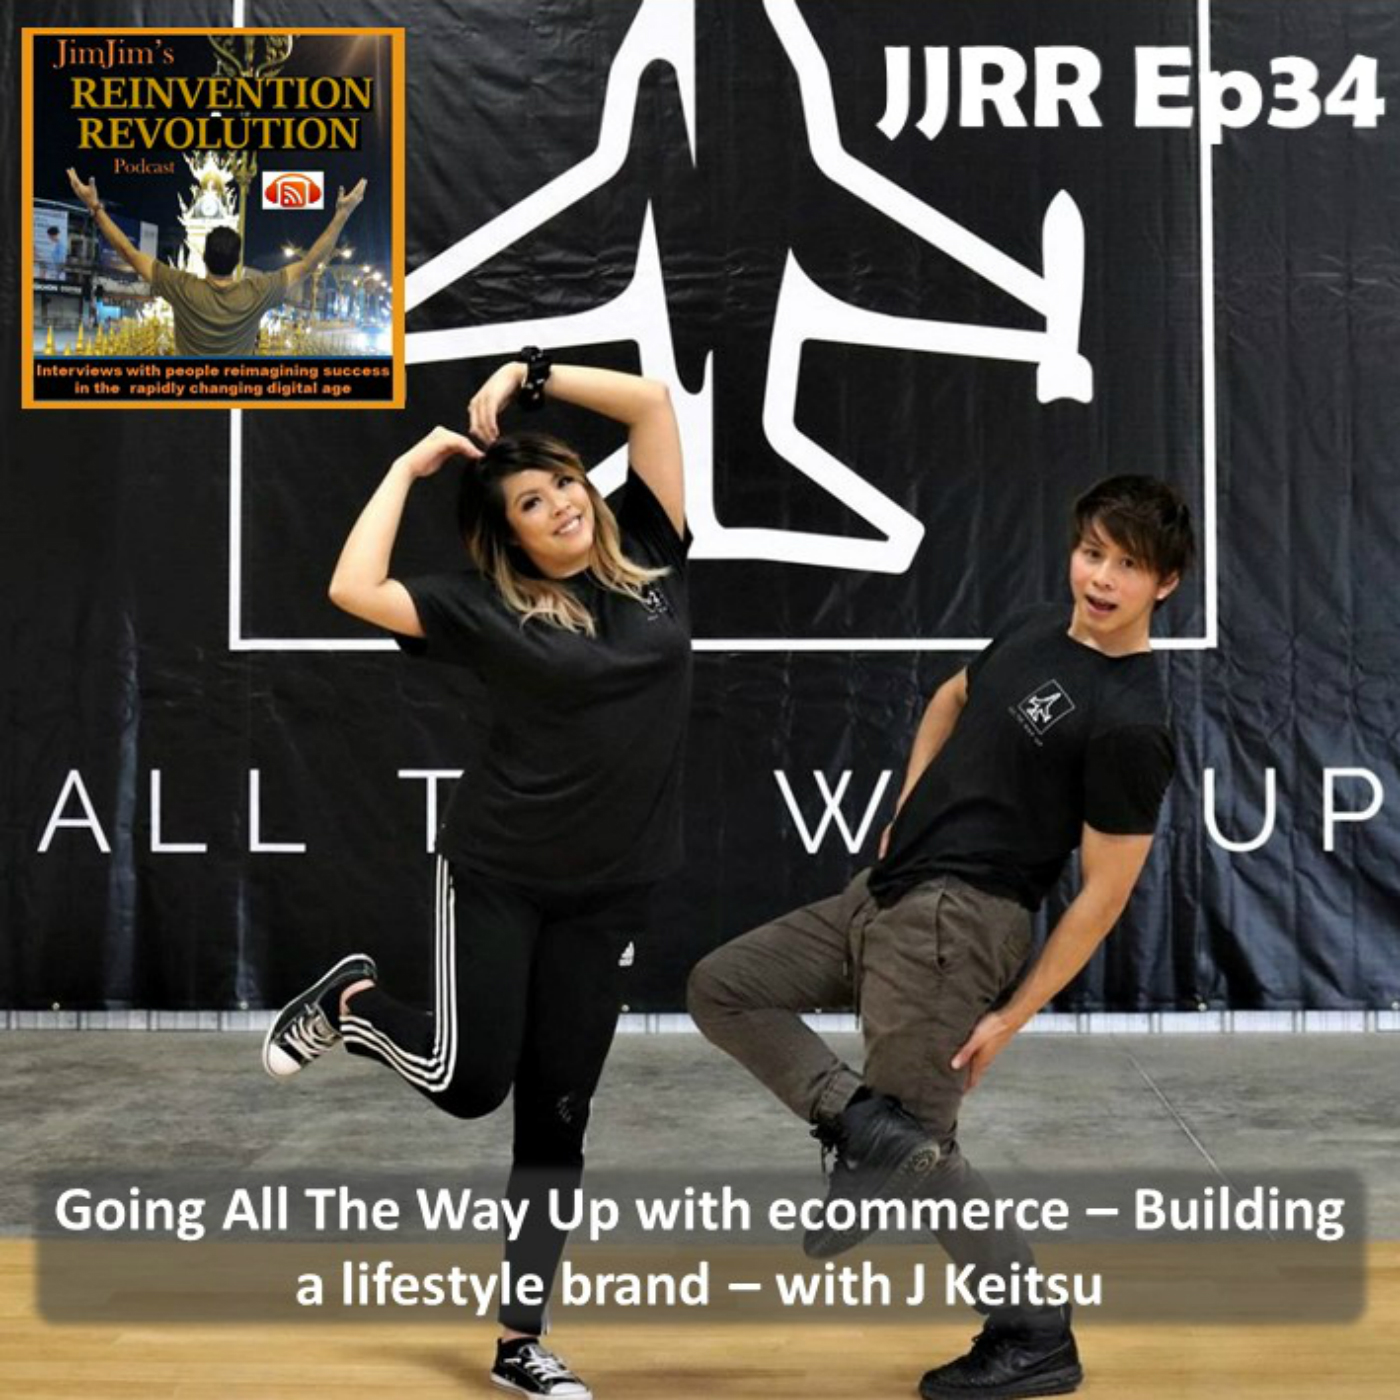 Read more about the article JJRR Ep34 Going All The Way Up with ecommerce – Building a lifestyle brand – with J Keitsu